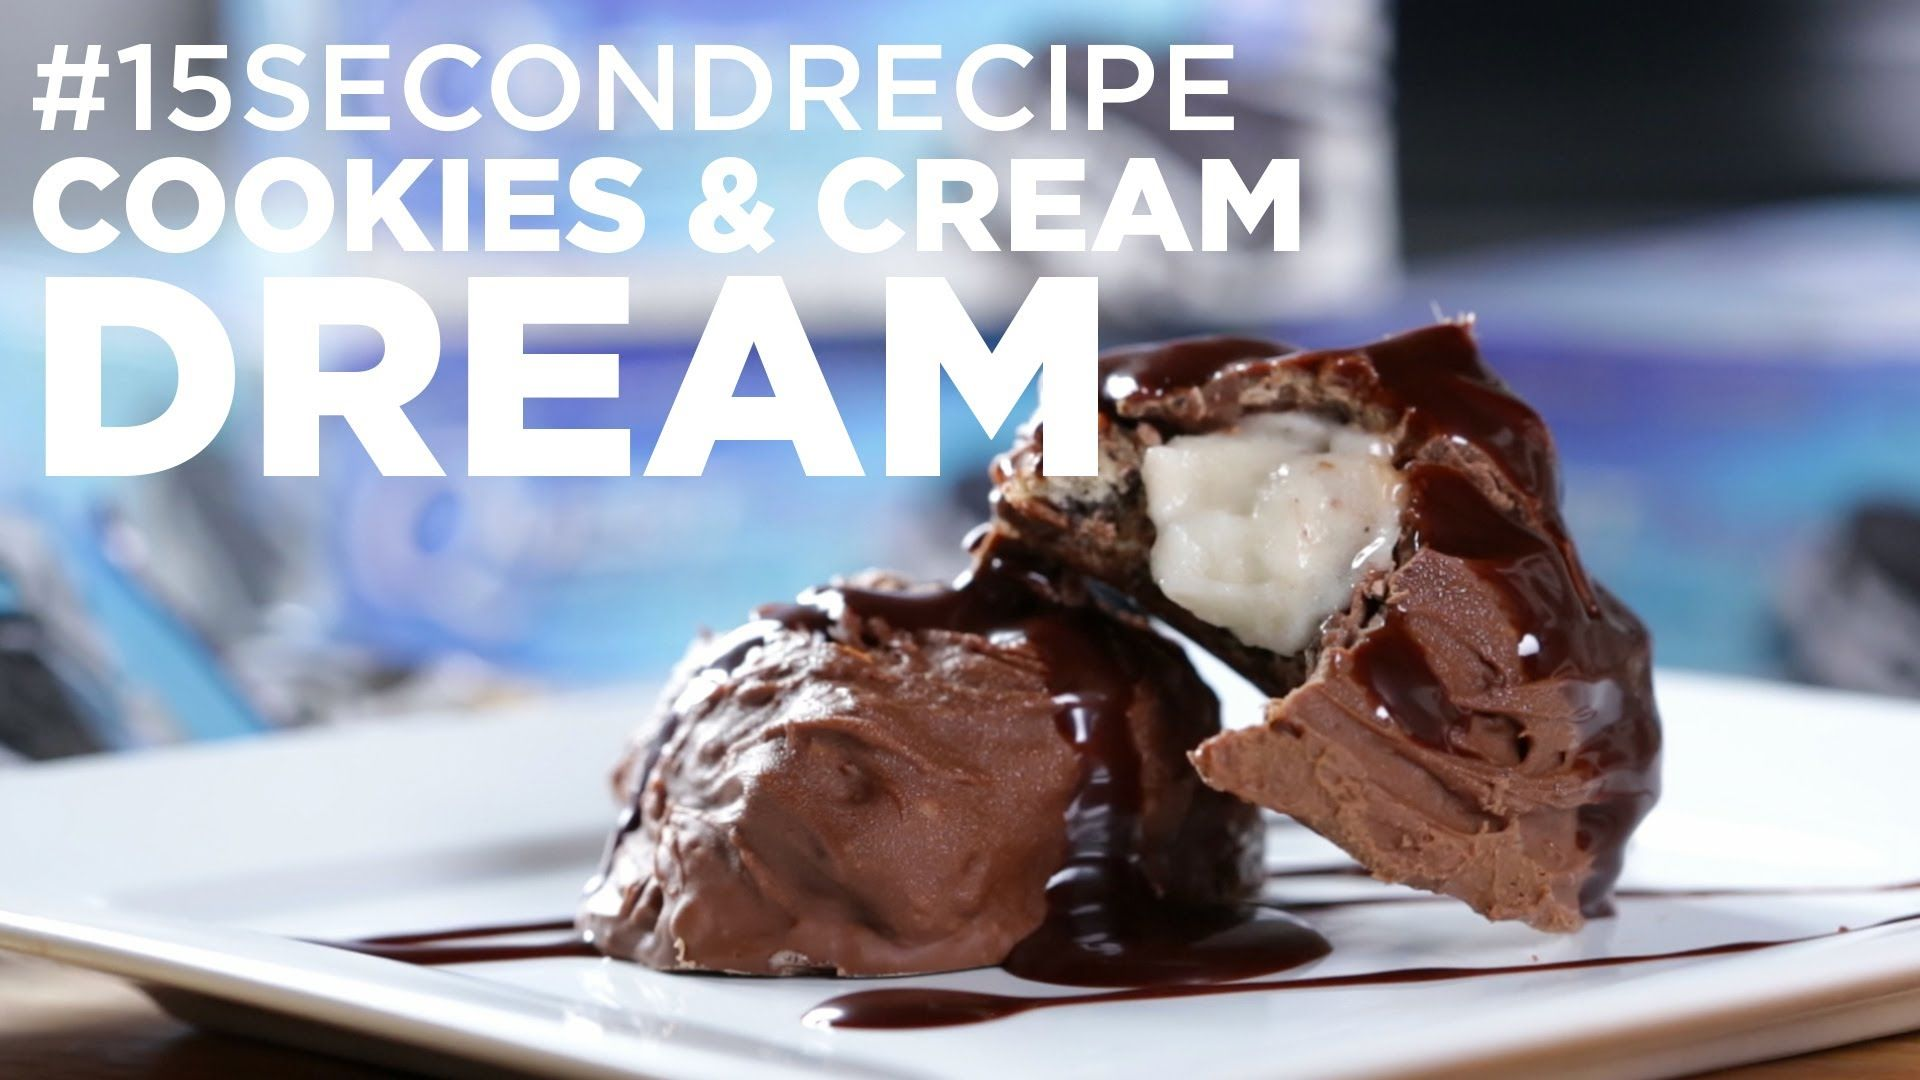 Having dreams of #CookiesAndCream? WATCH the Cookies and Cream Dream #15SecondRecipe. Special guest appearance from Arctic Zero!